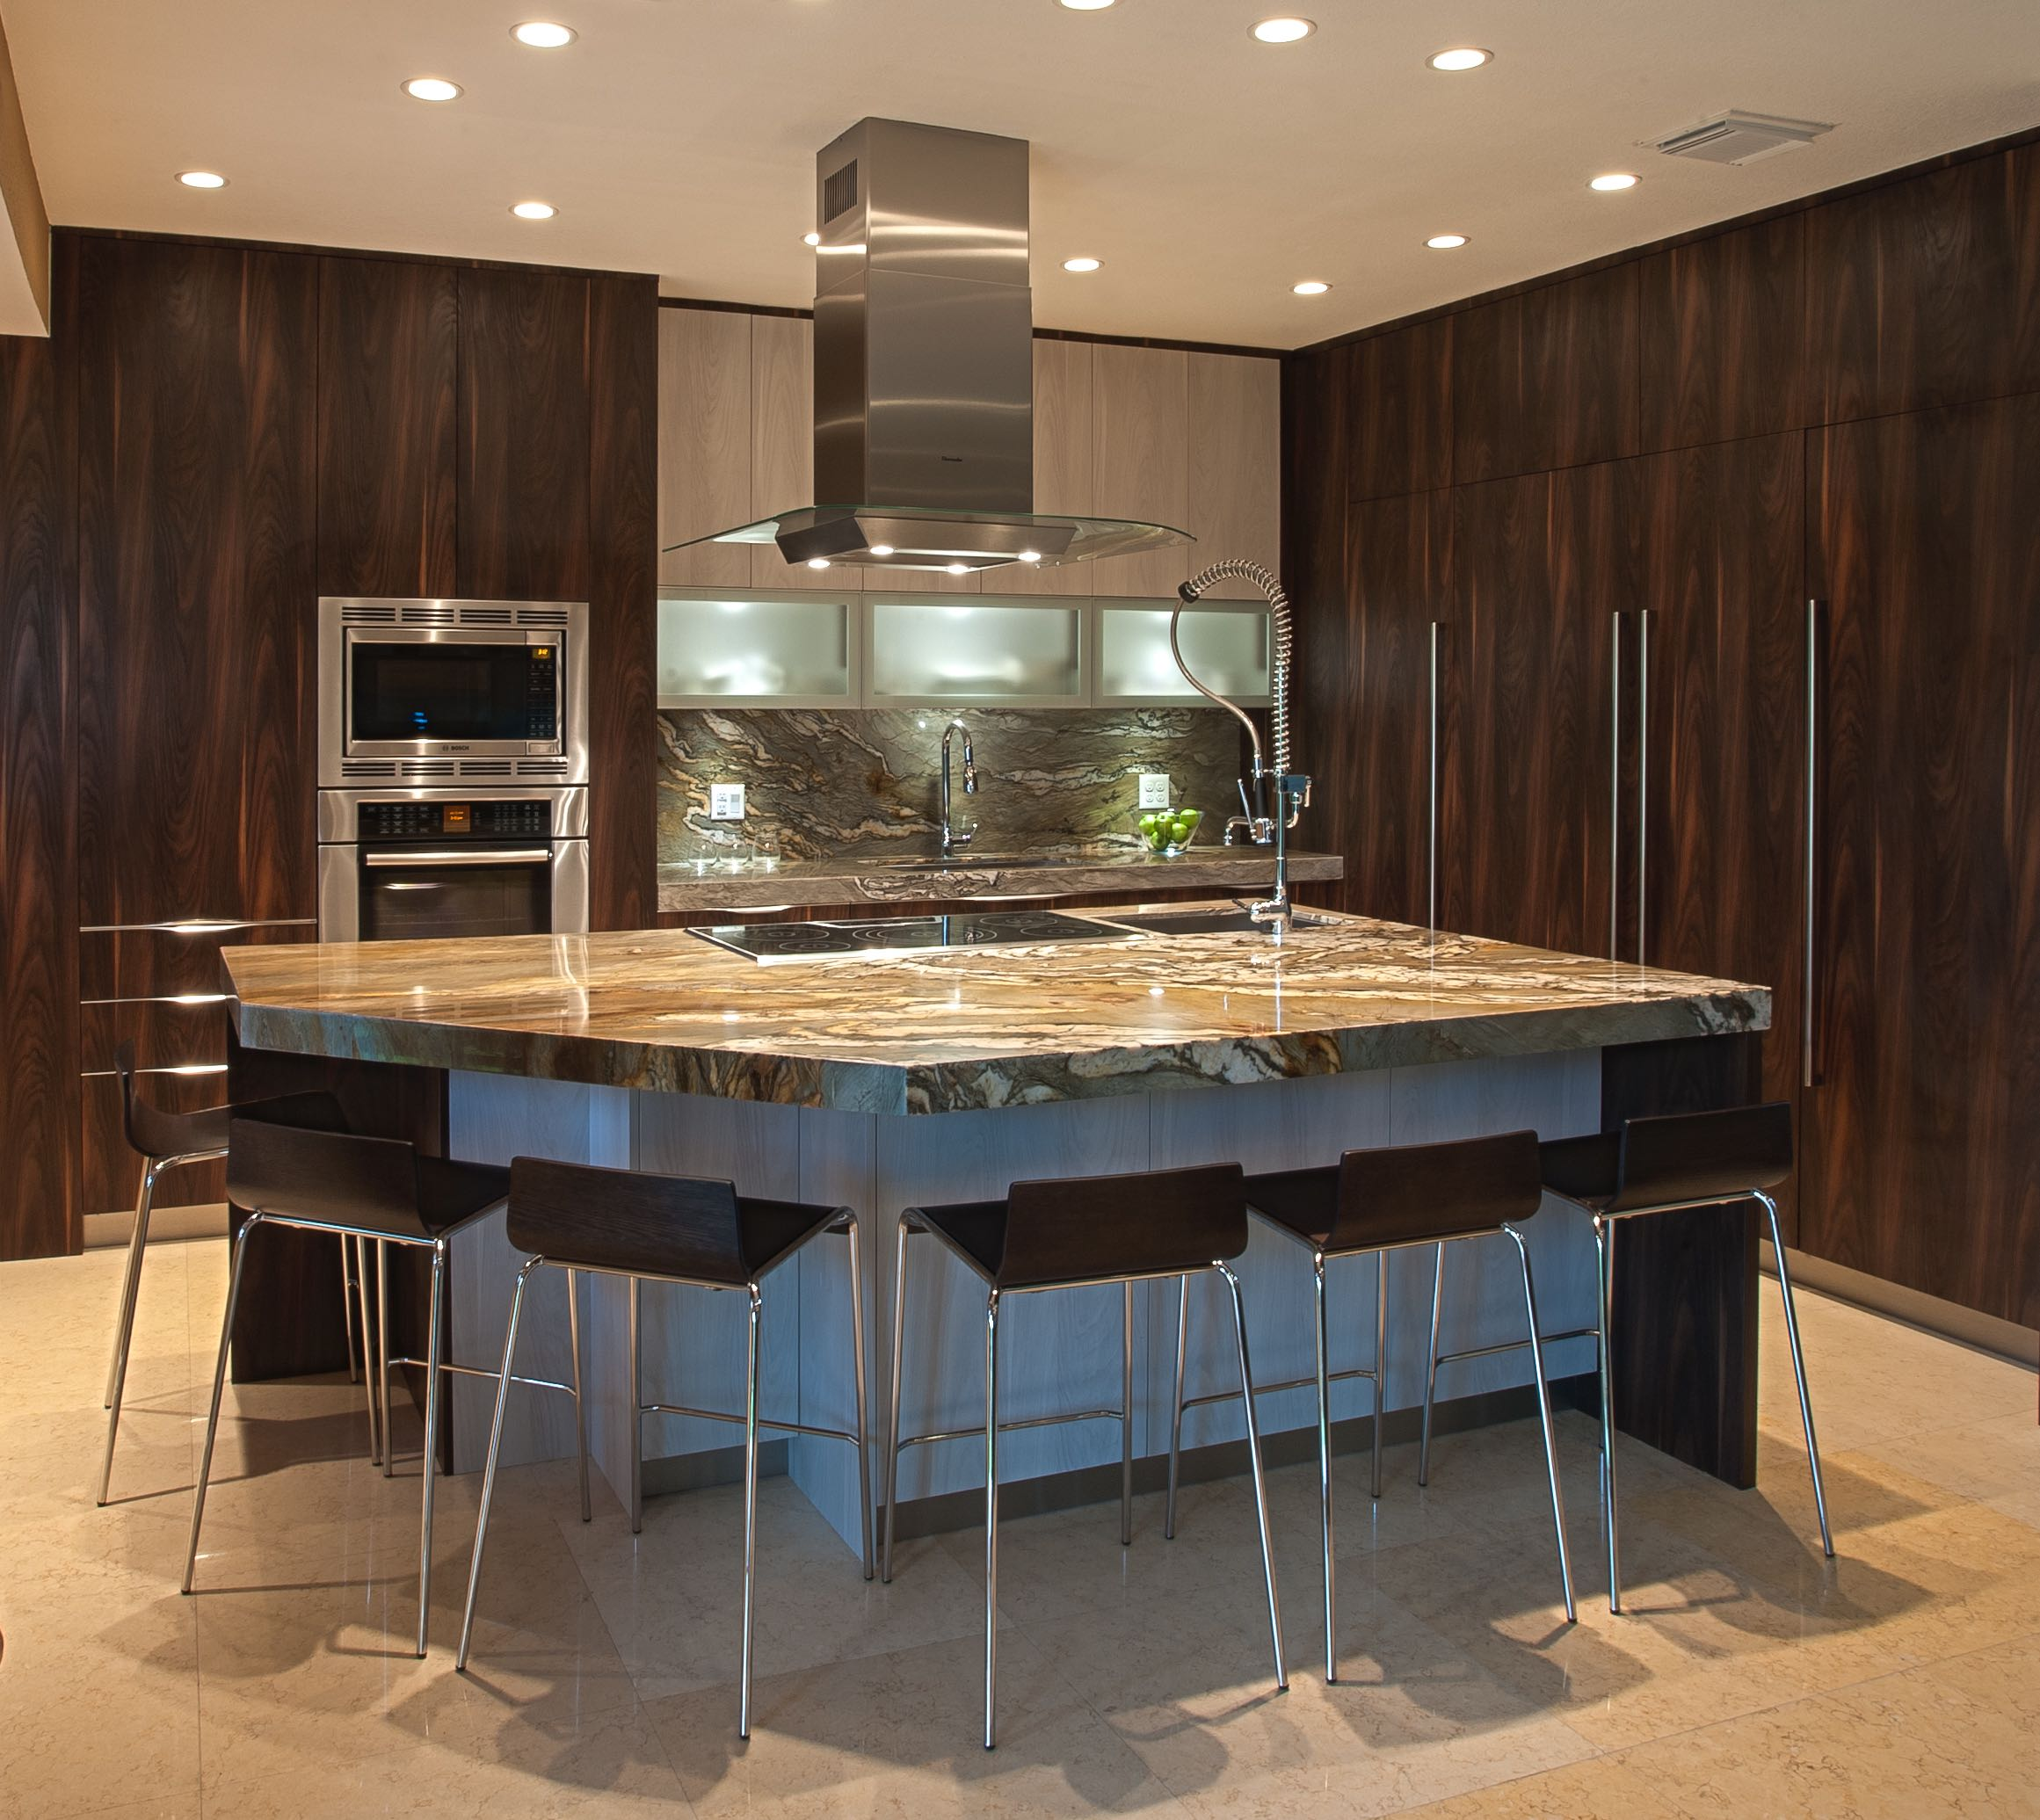 Kitchen cabinet doors barrie - A Sleek And Modern Designed Kitchen With Two Tone Using Textured Laminate The Brown Vertical